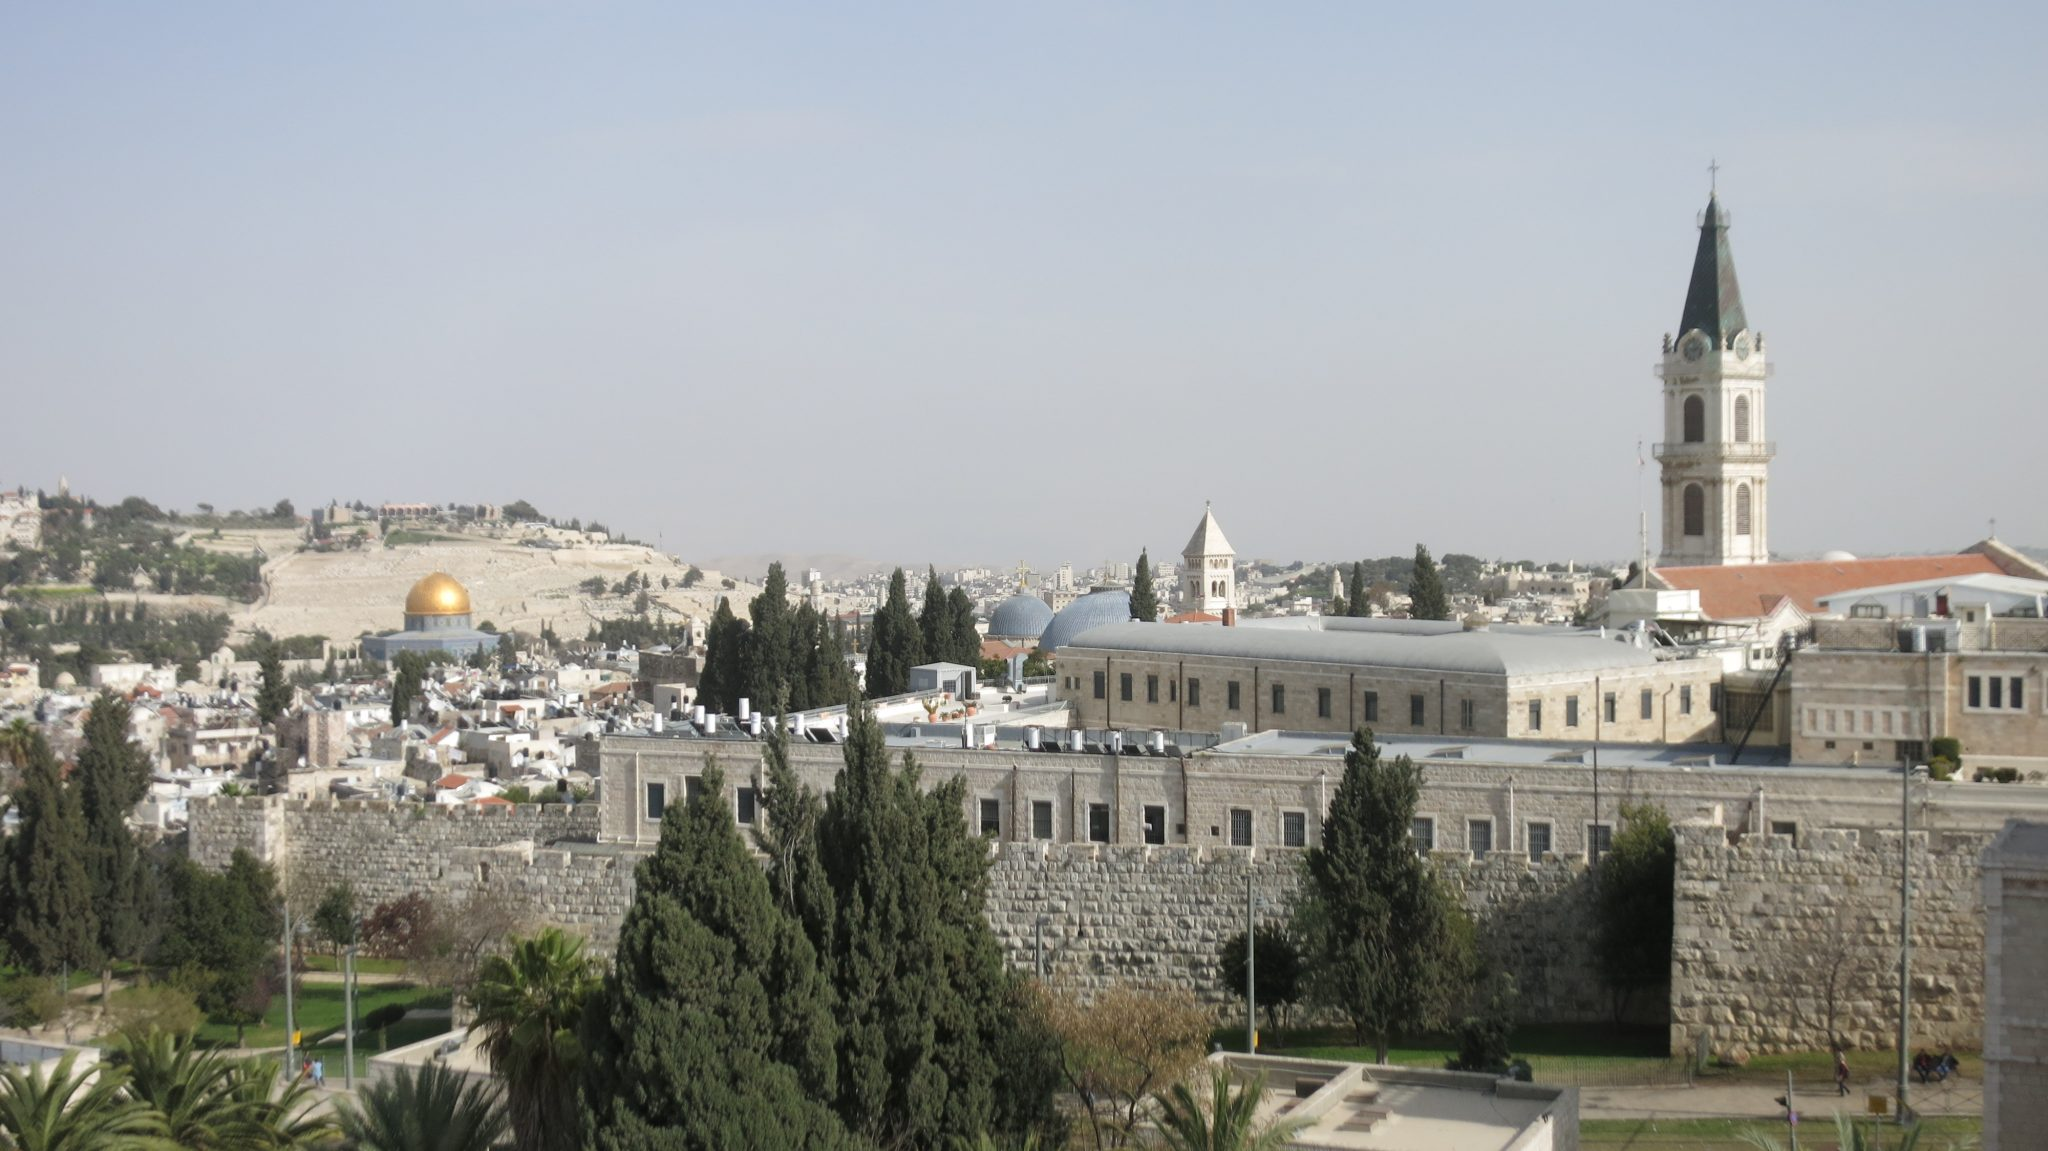 view into the Old City of Jerusalem from the roof of the Monastery of Notre Dame, one of the stops in my Bitemojo tour